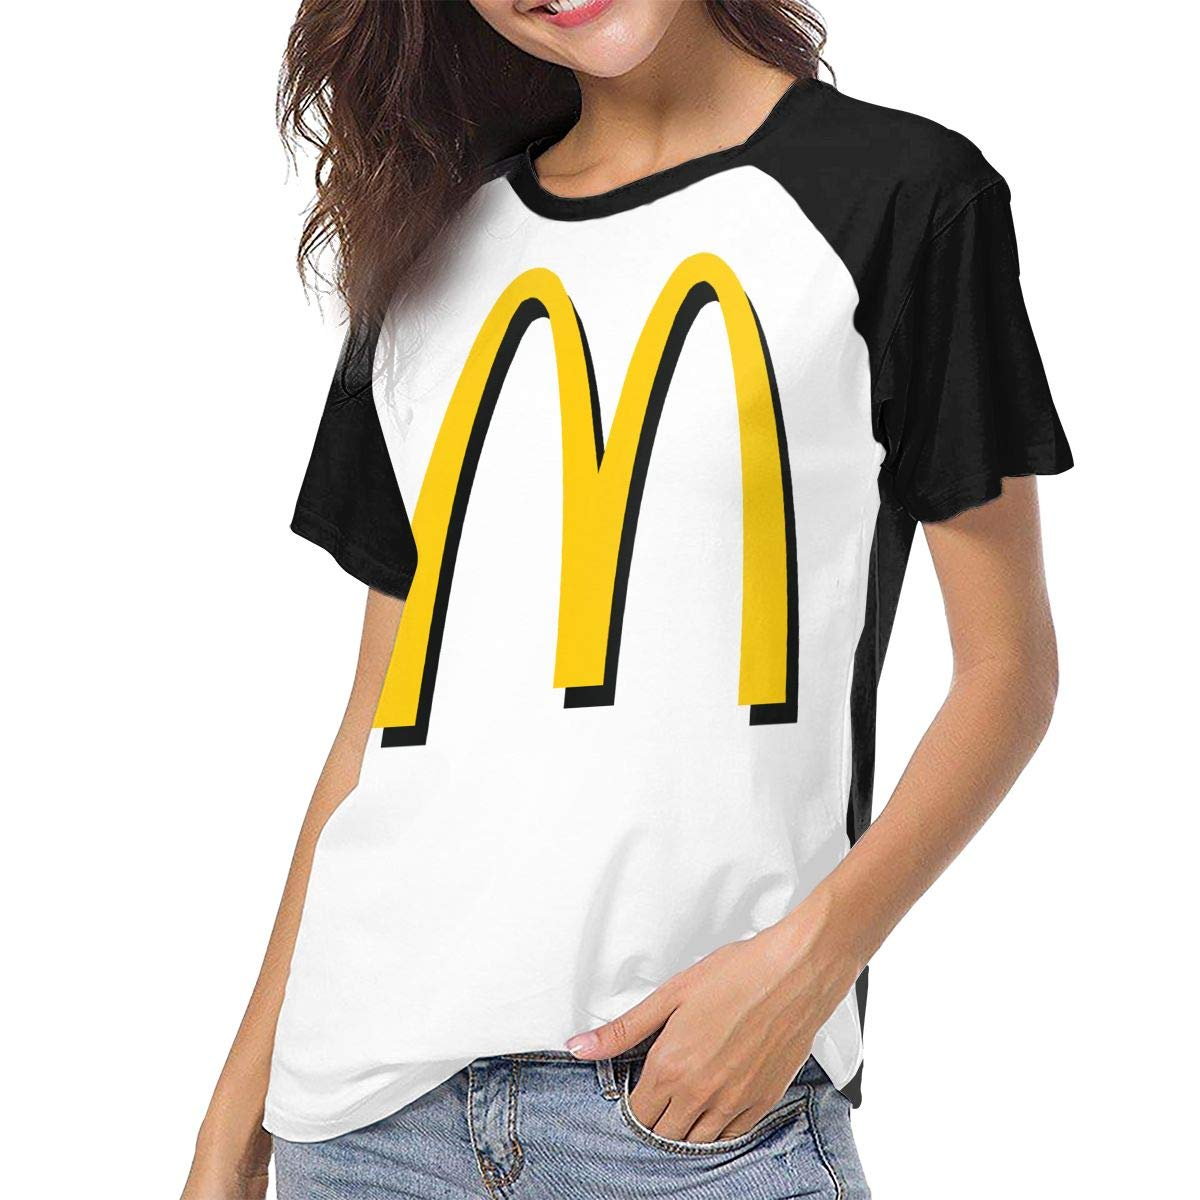 Women's T Shirt McDonalds Logo Tee Shirts Casual Cotton T-Shirt Short-Sleeve Round Neck Tshirt for Women Youth Girls Black S by BKashy